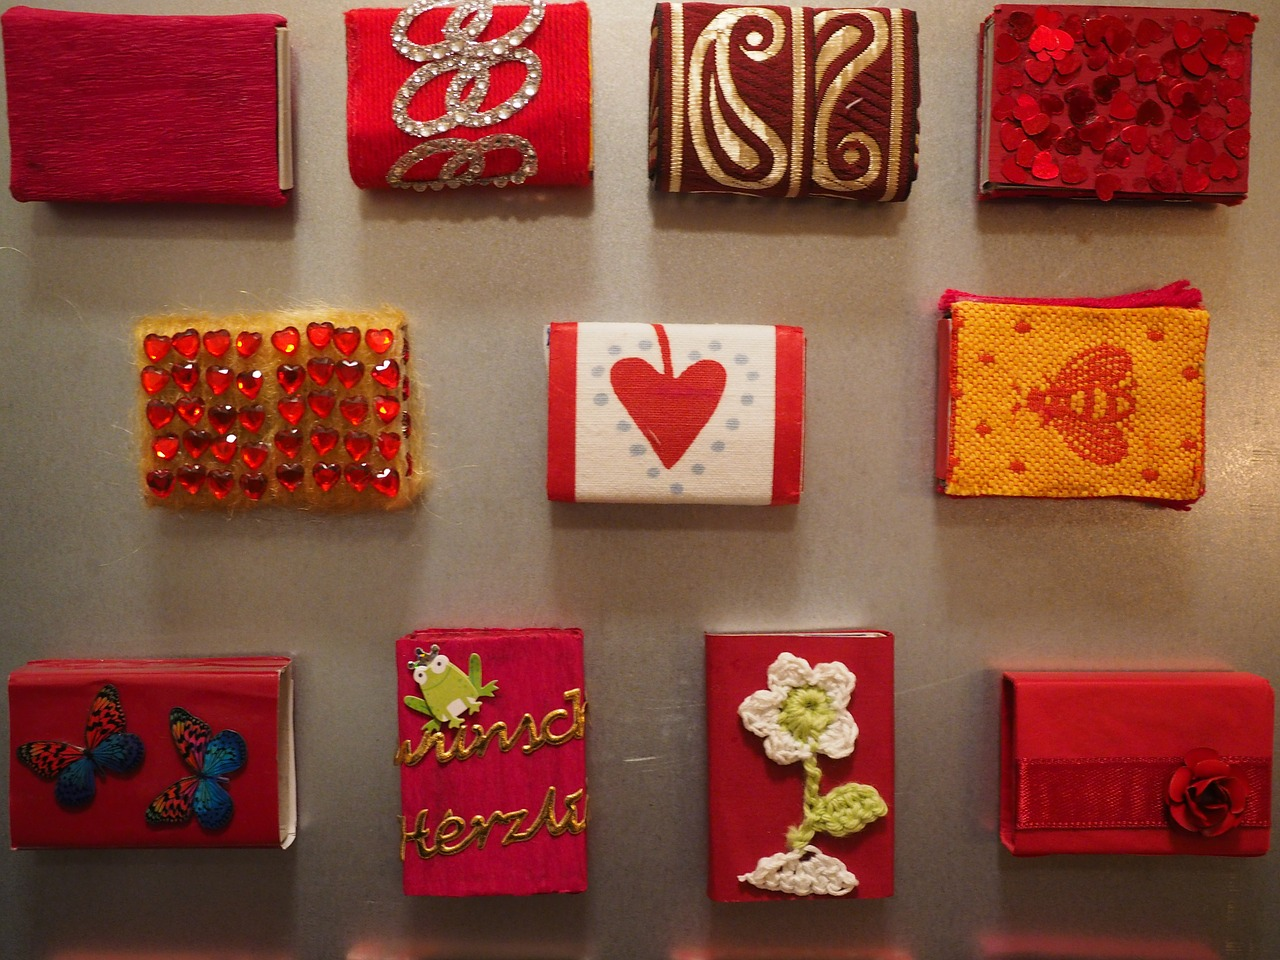 Creative Gift Ideas for the Small Business Owner - an array of little gift-wrapped boxes